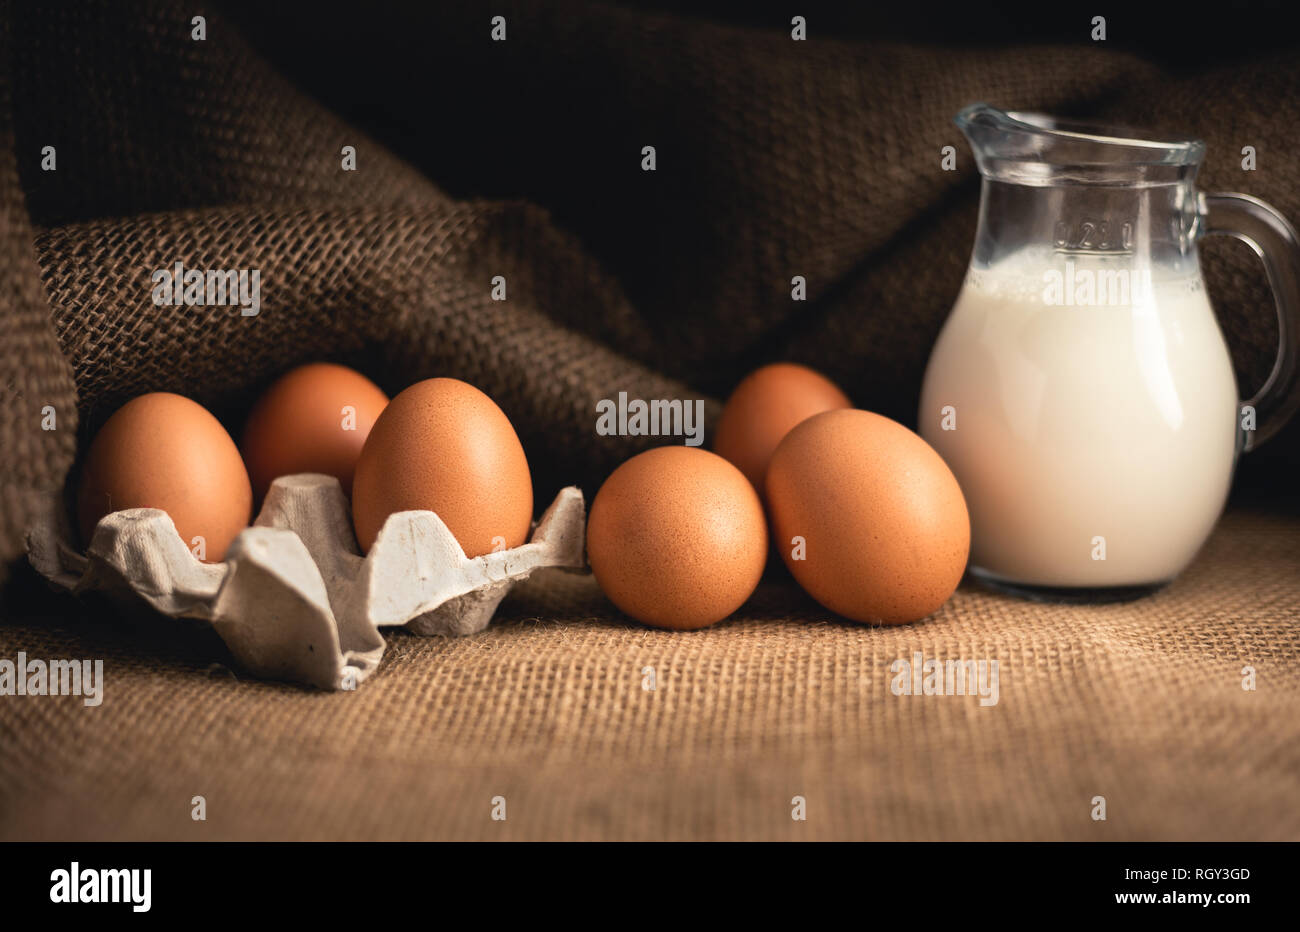 Photo of raw illuminated eggs  in kitchen with jute on dark background. Close-up photography of bio chicken eggs in egg box with milk in a ewer glass. Stock Photo